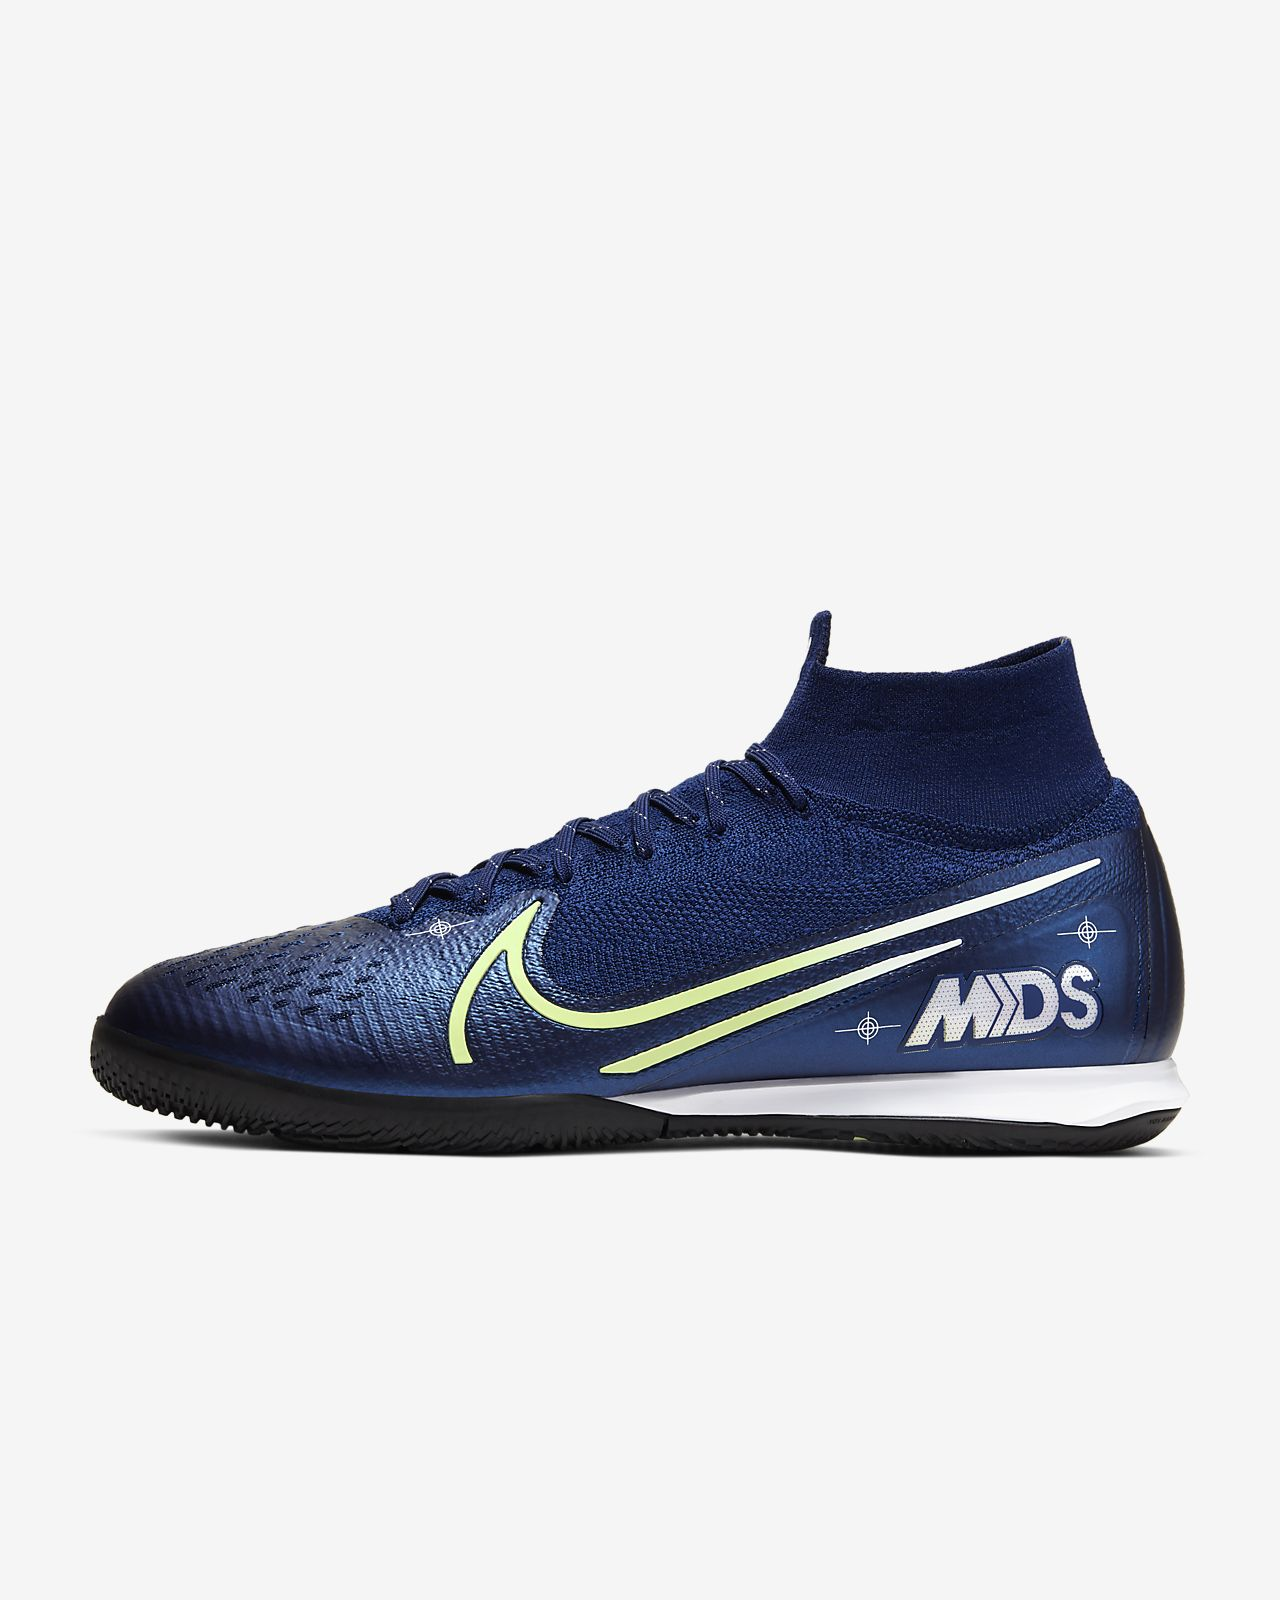 Nike Mercurial Superfly 7 Elite MDS IC Indoor Court Football Shoe